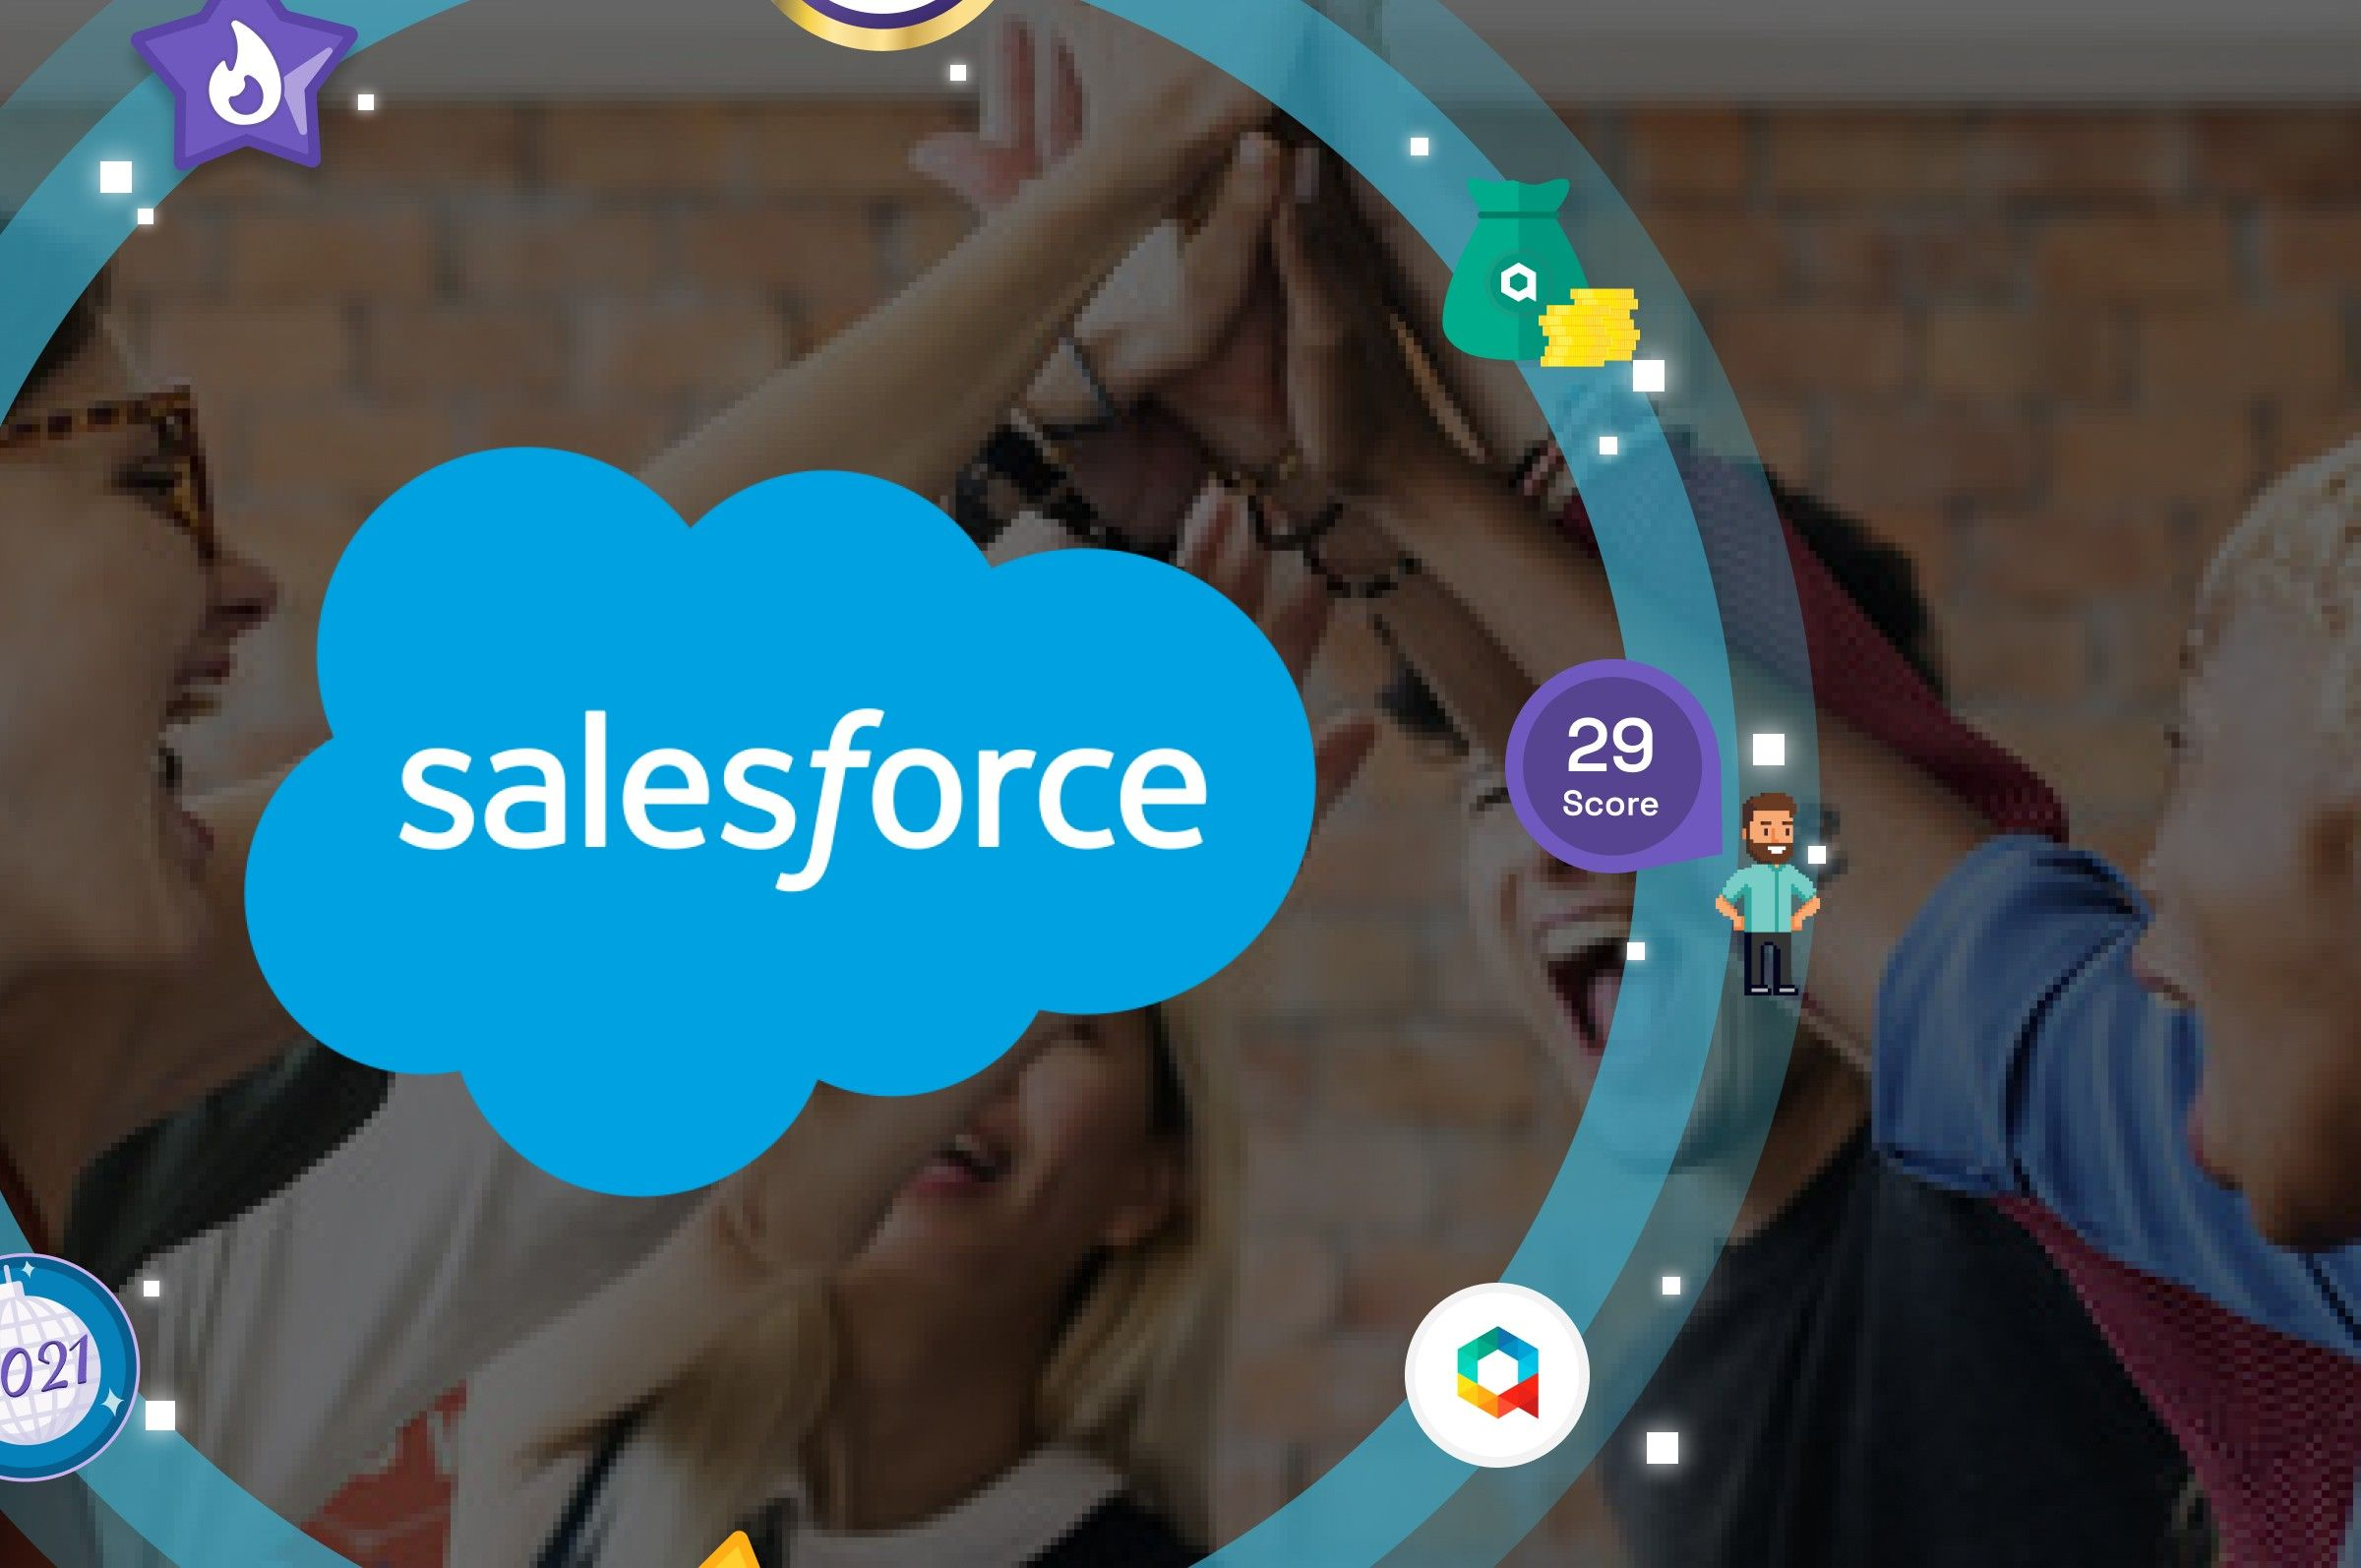 How salesforce gamification tools can improve team performance